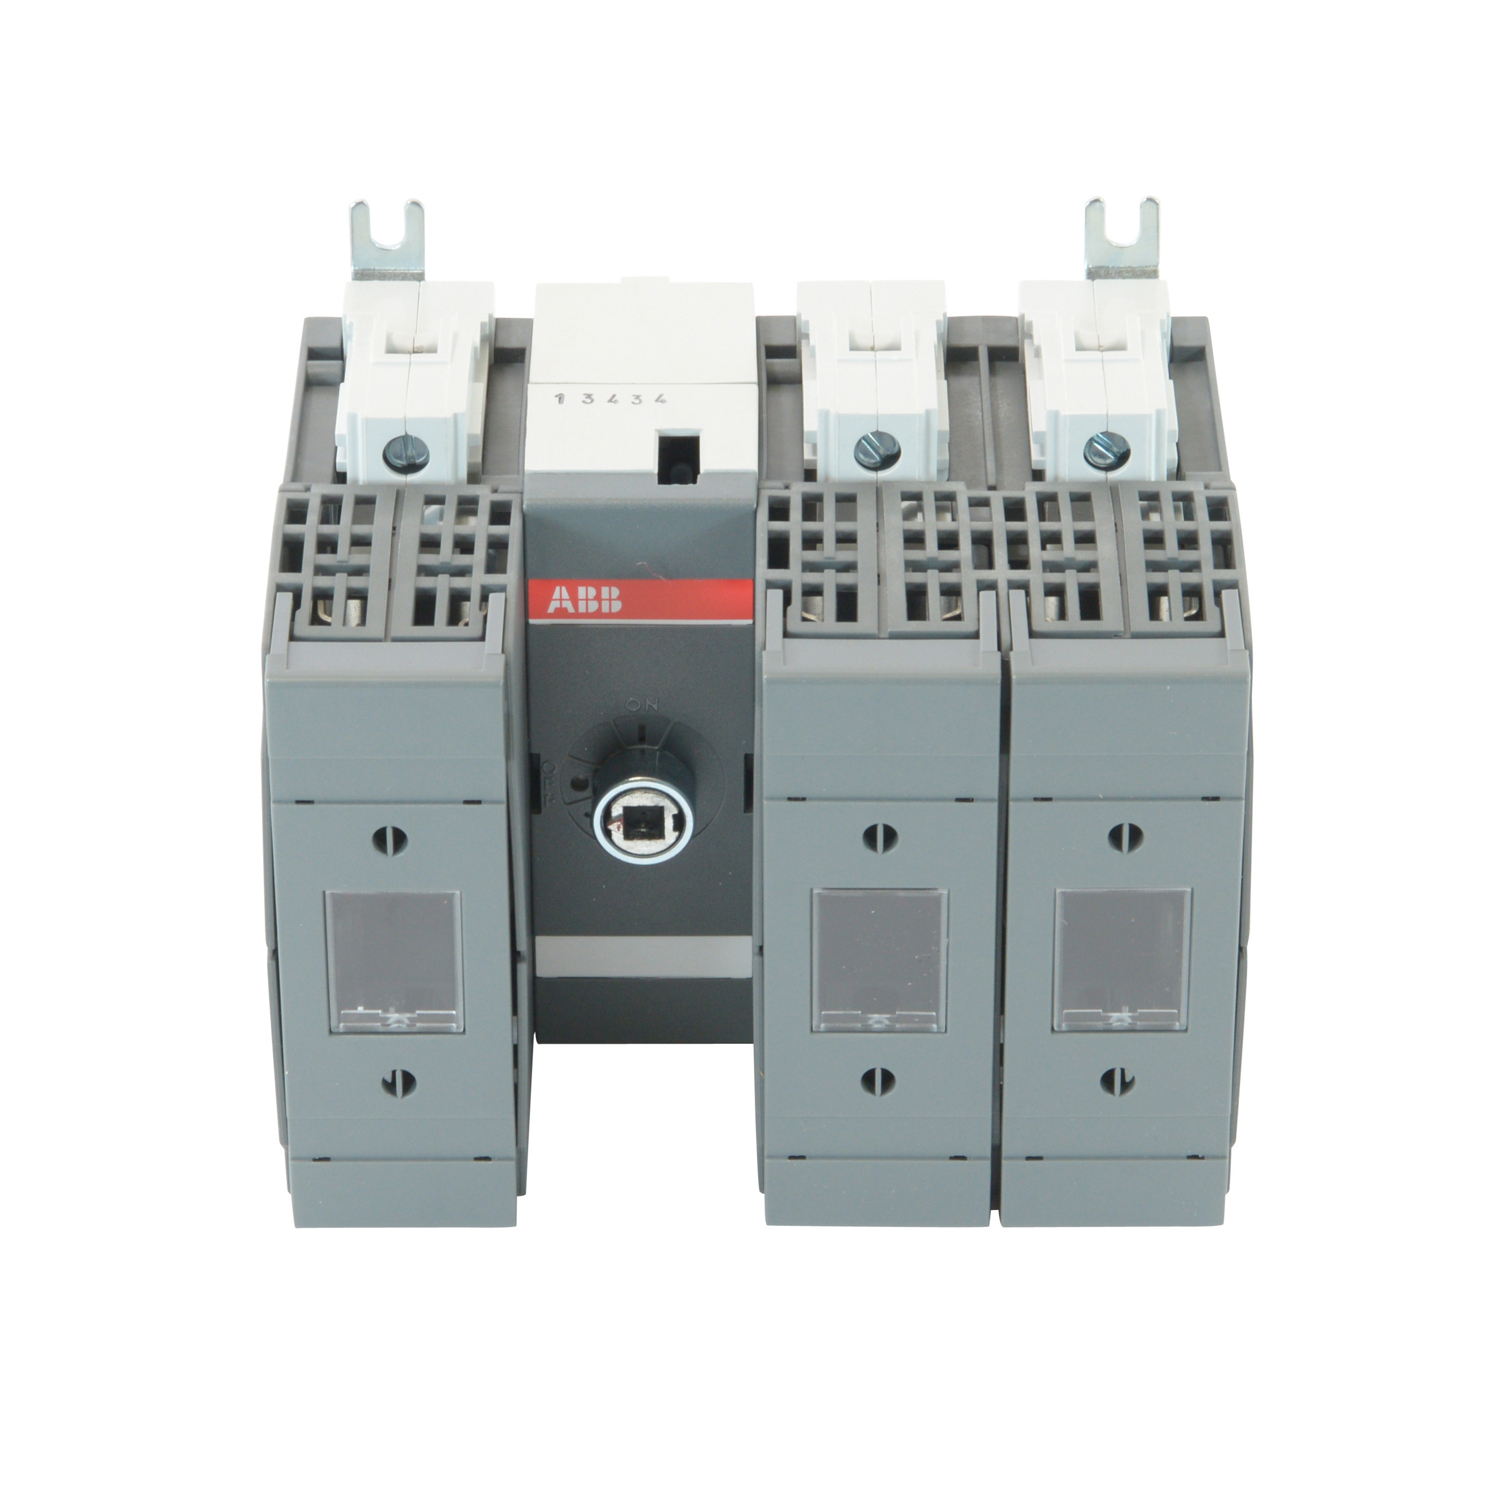 abb acs 600 wiring diagram star delta starter control with explanation and automation disconnect switches fusible